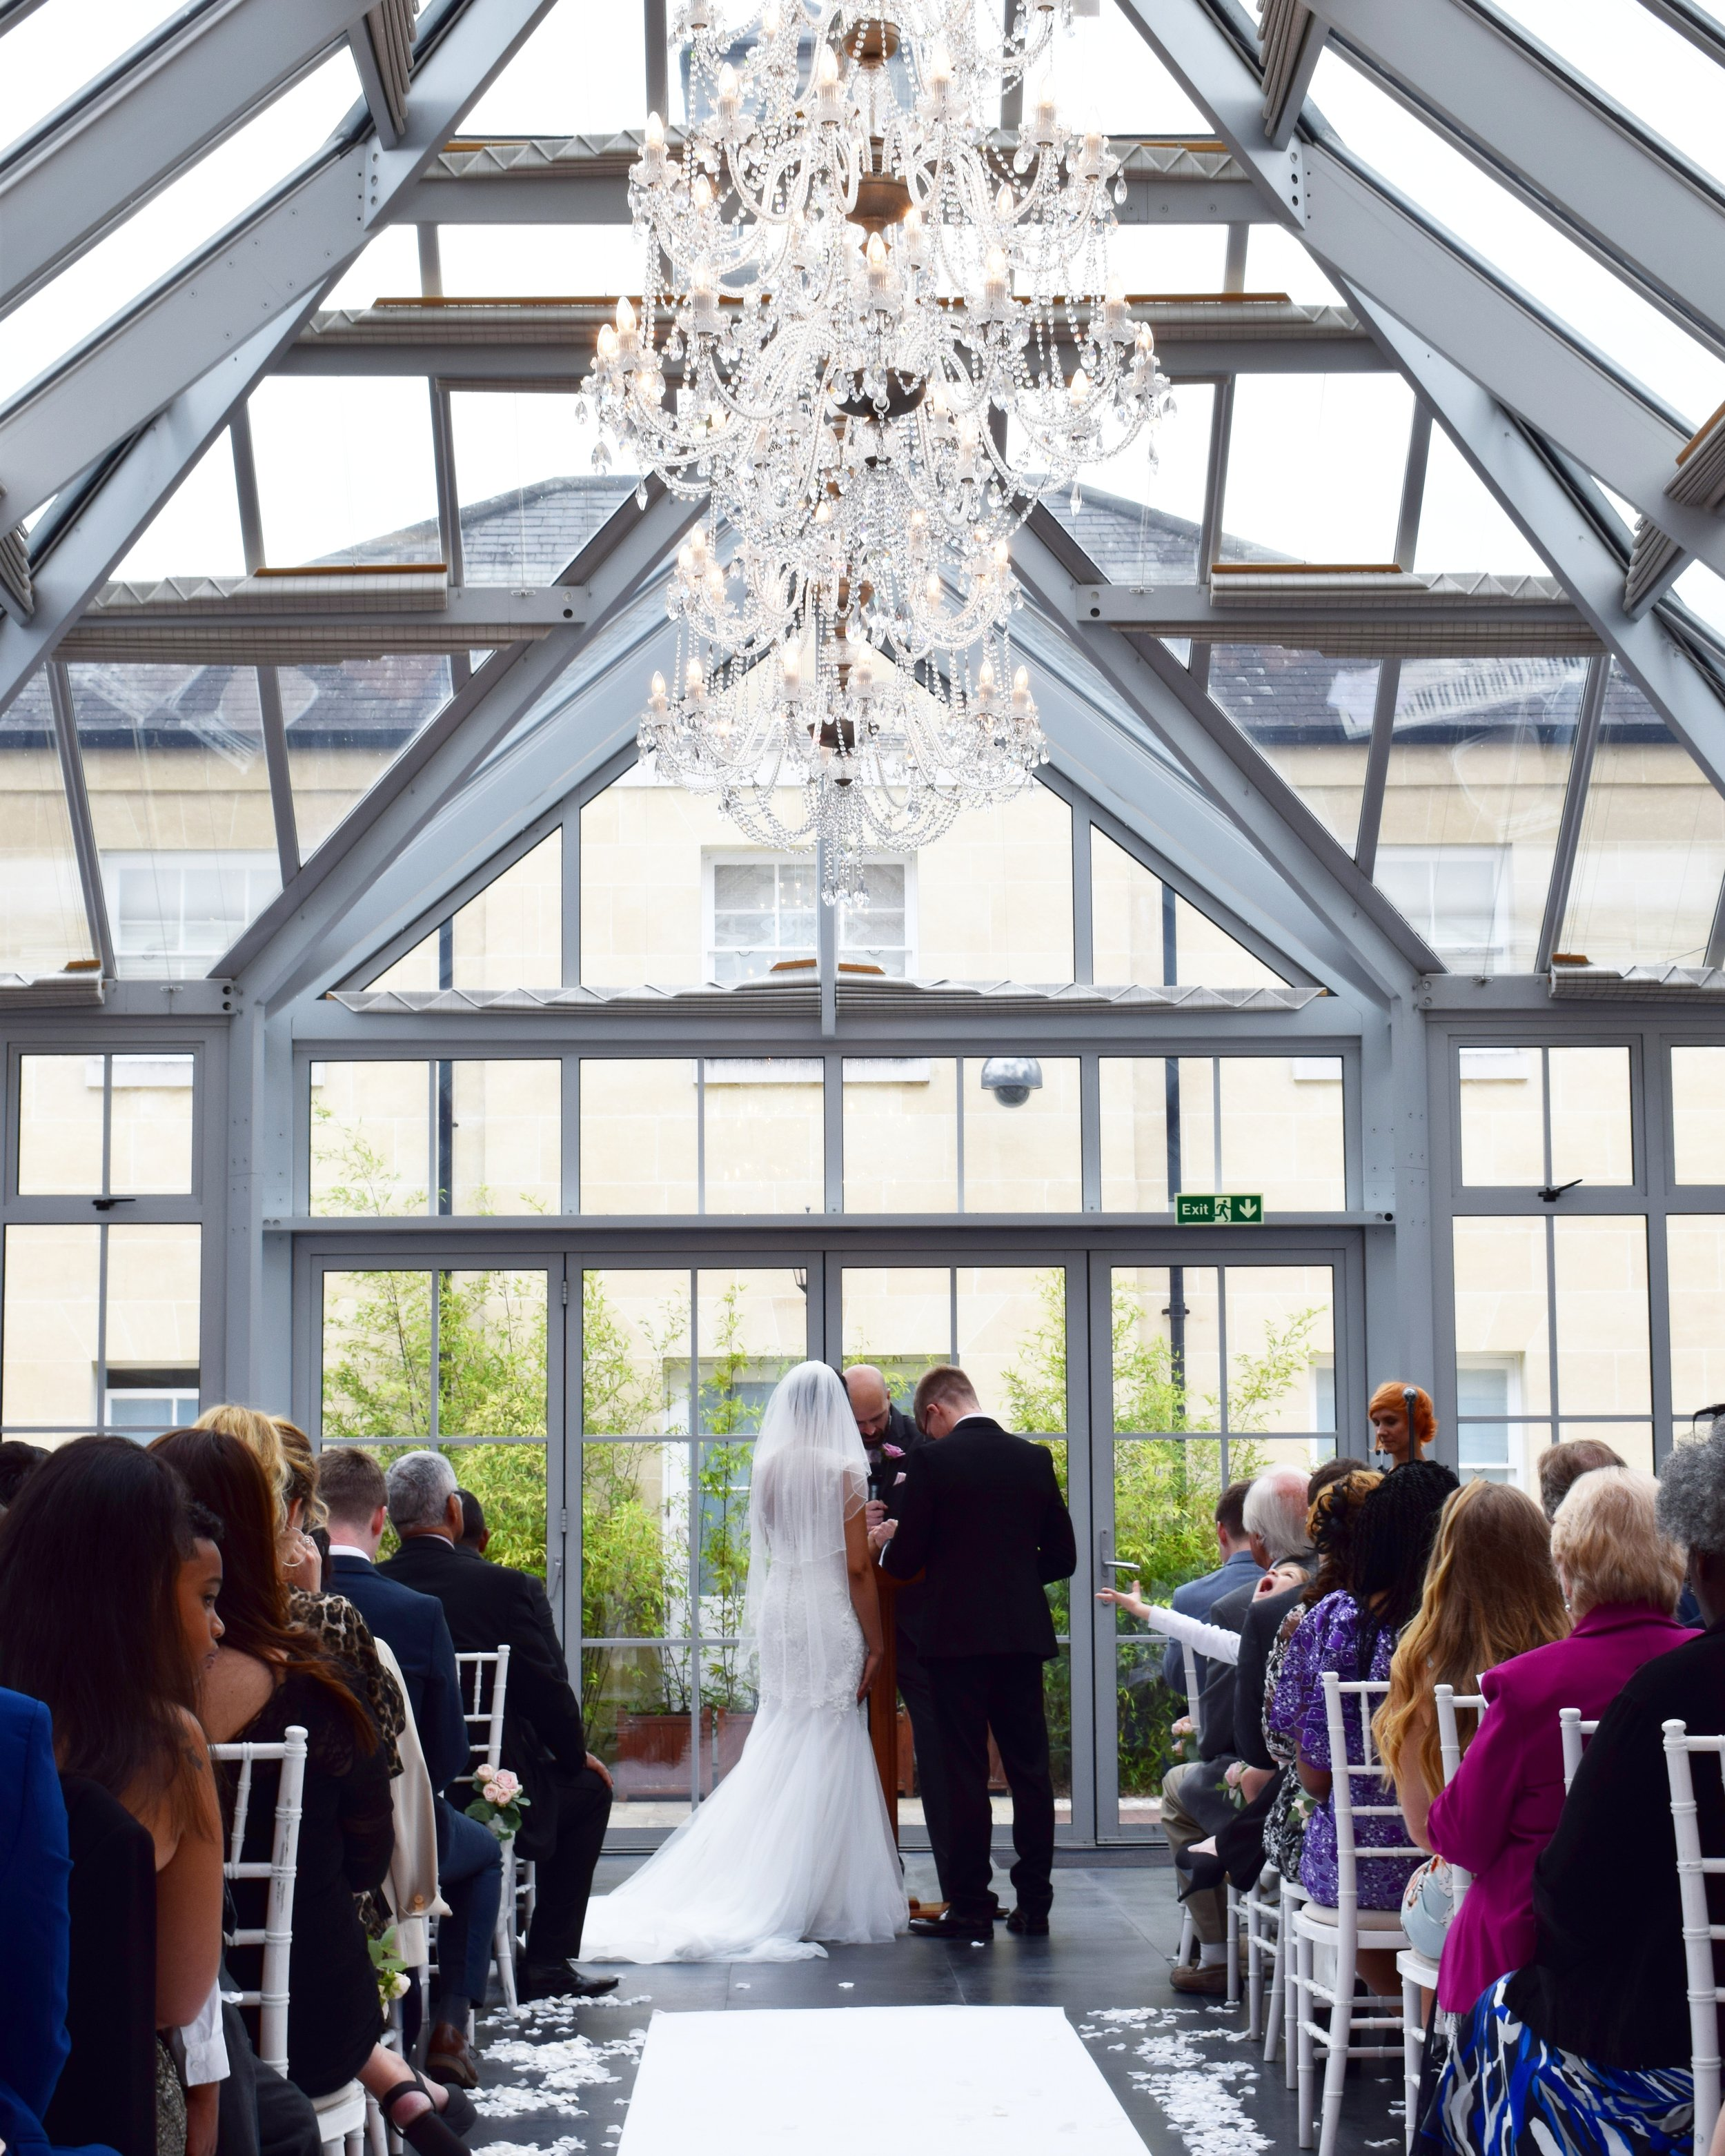 Wedding photo ideas: Botleys Mansion Chertsey wedding venue ceremony